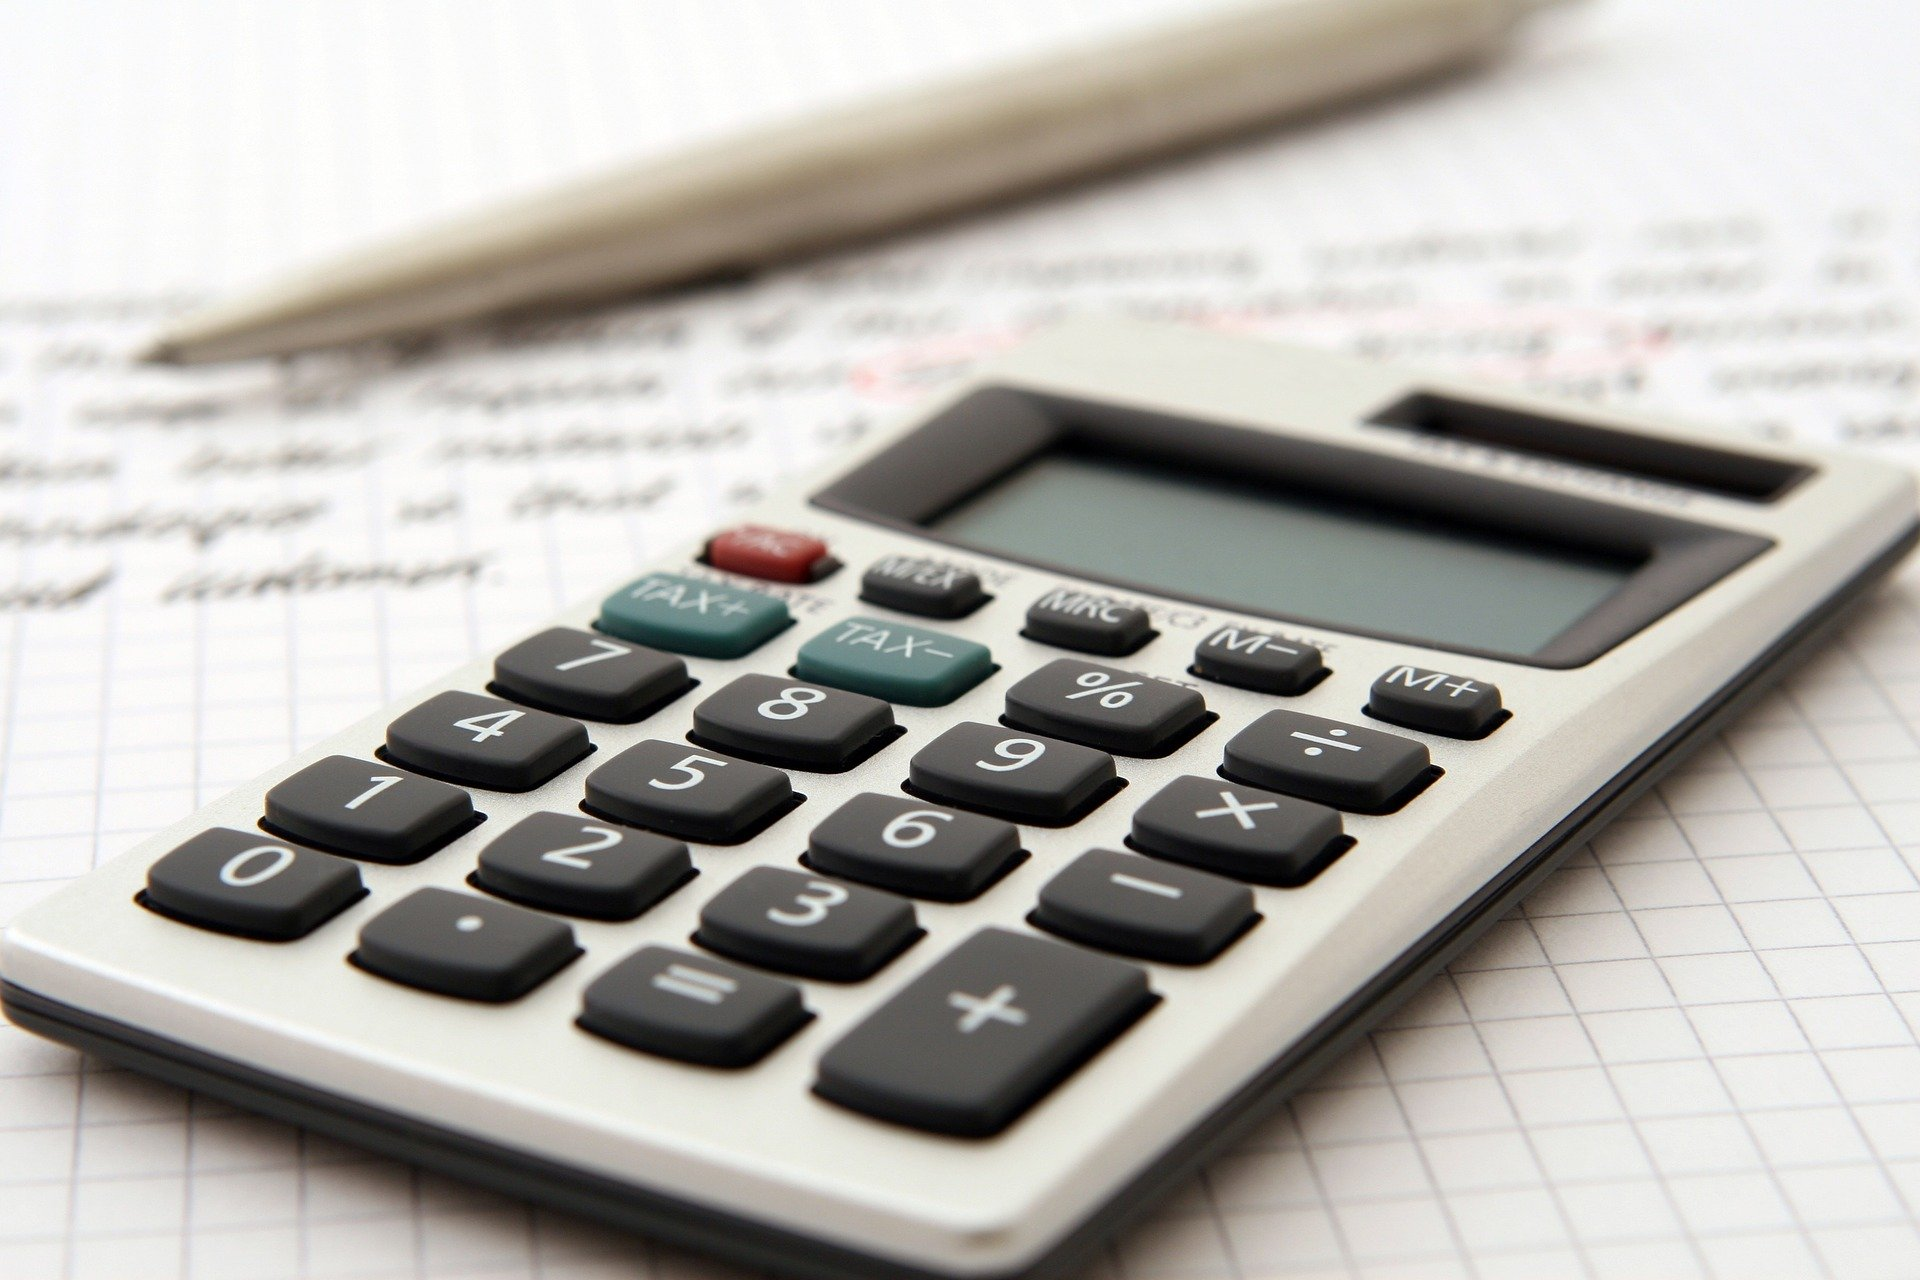 Property tax due date of April 10 due next week